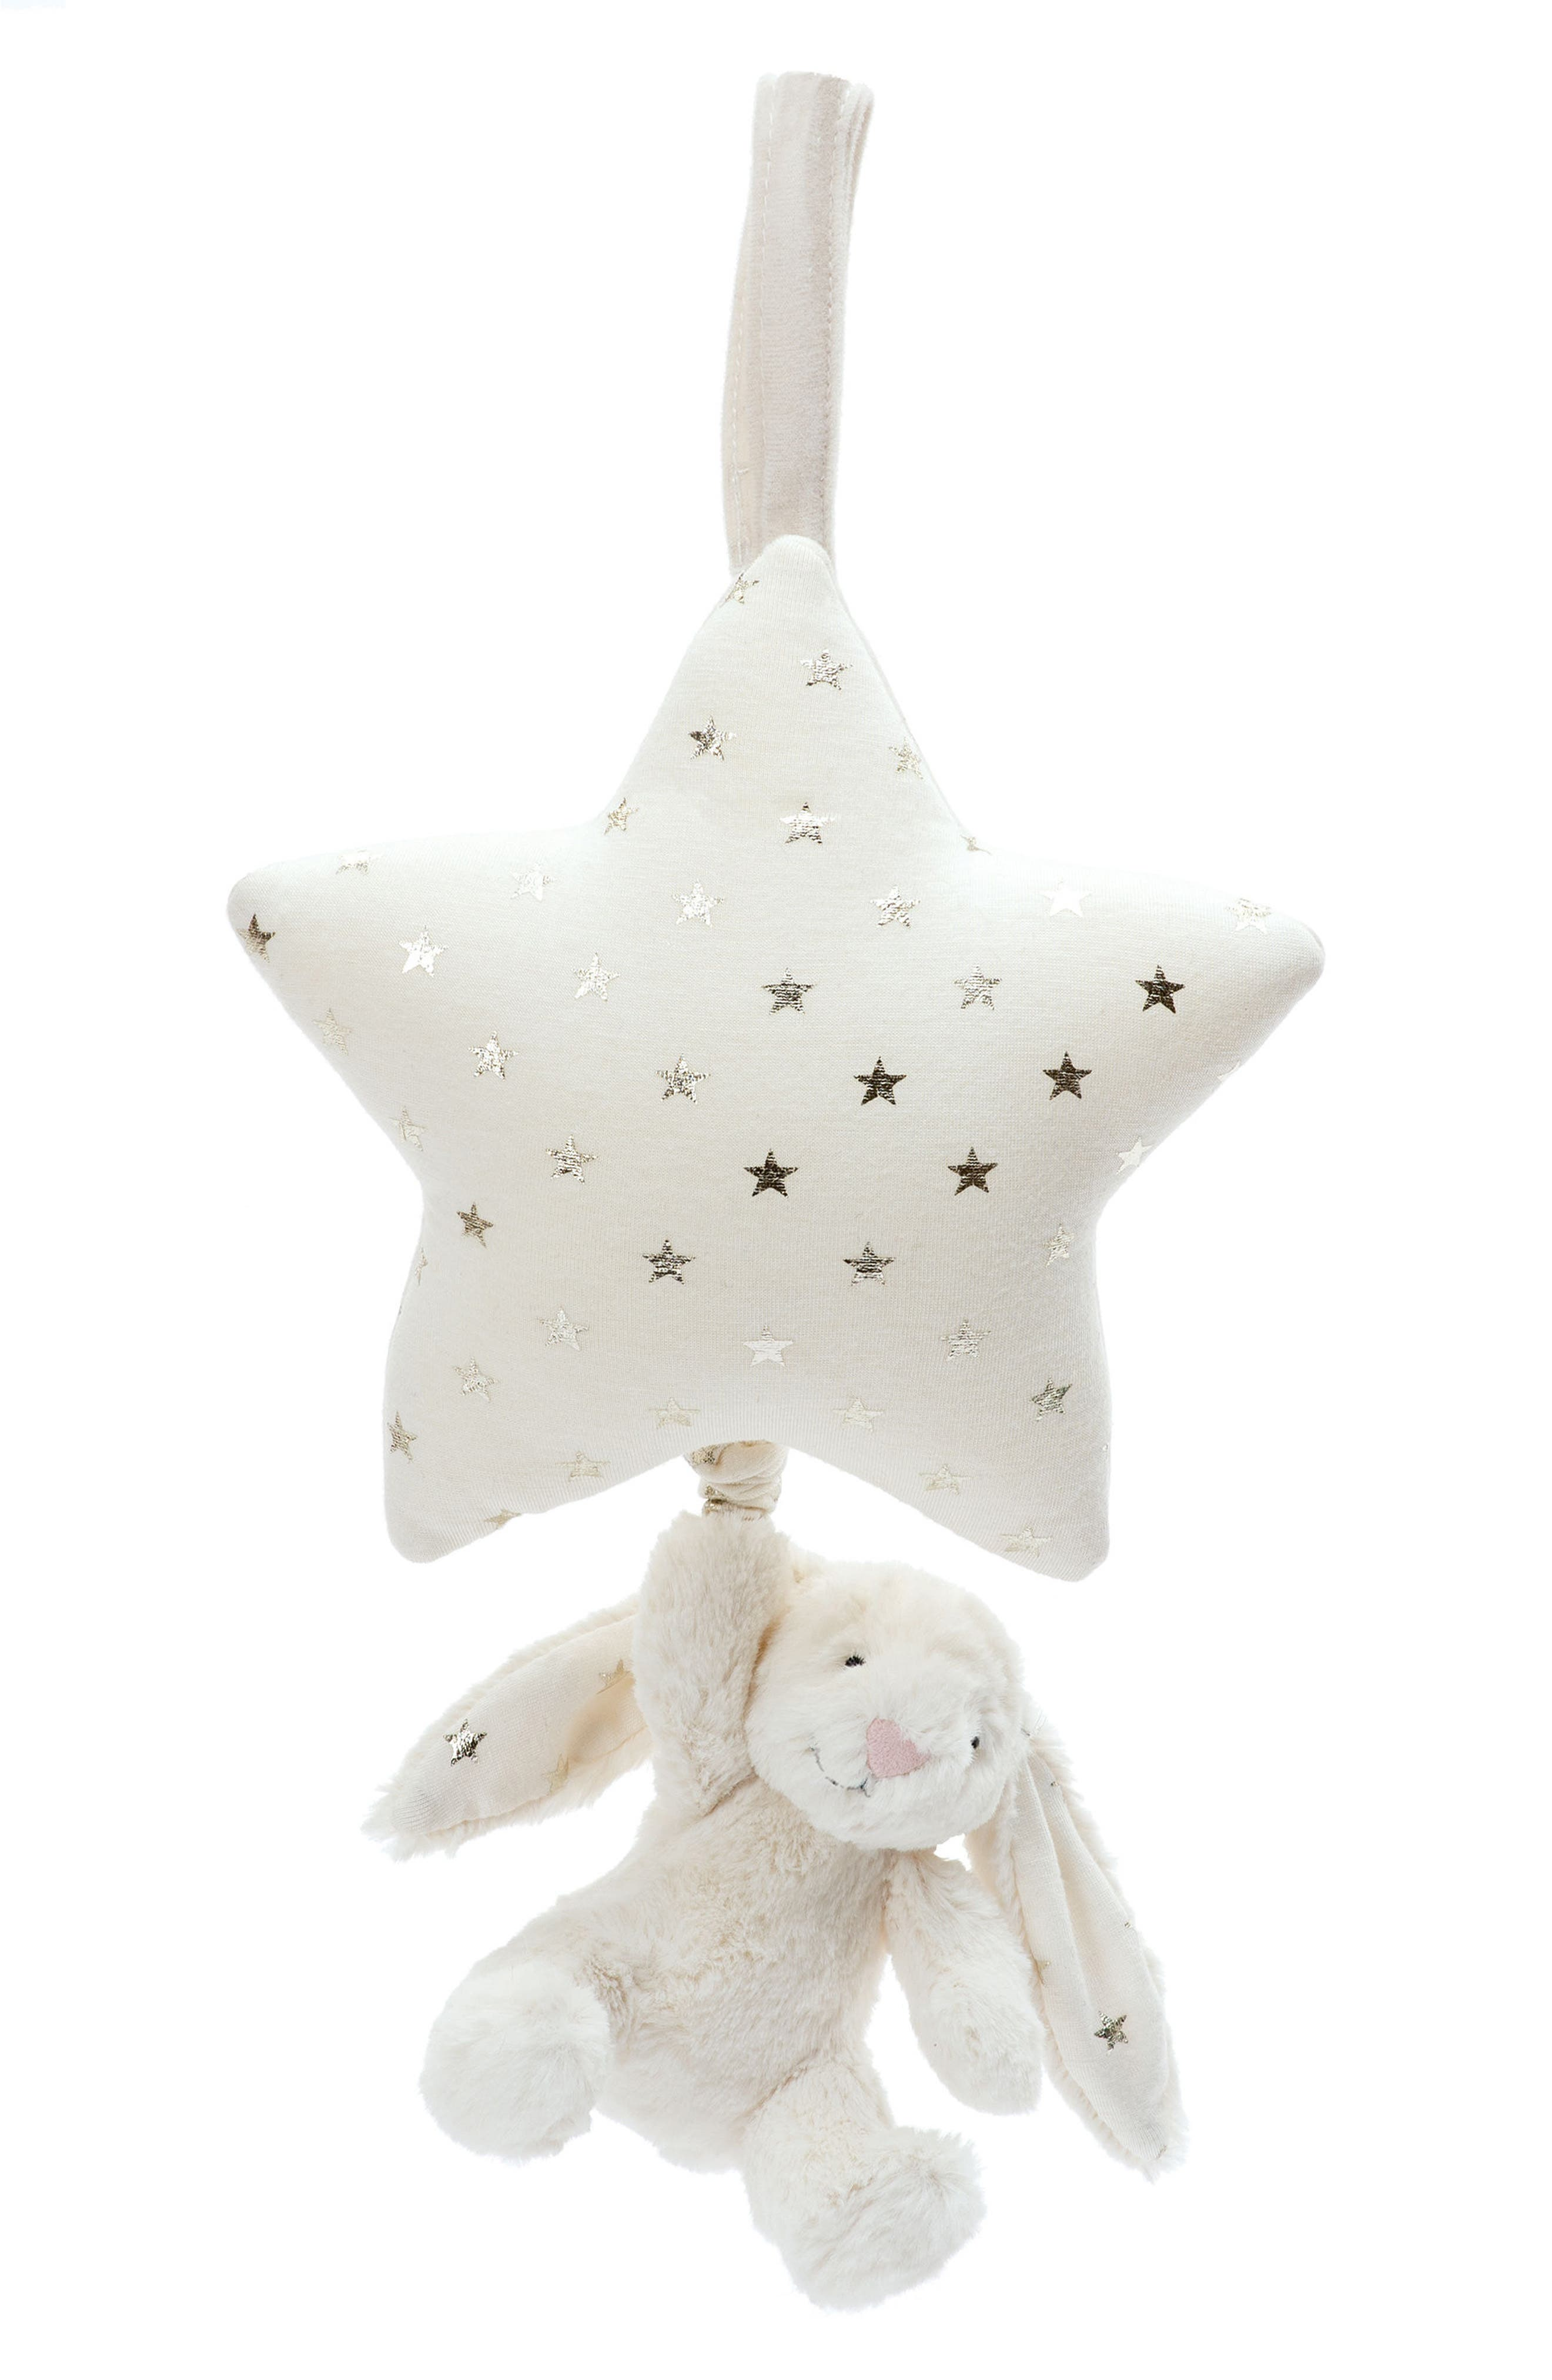 Main Image - Jellycat Twinkle Bunny Musical Pull